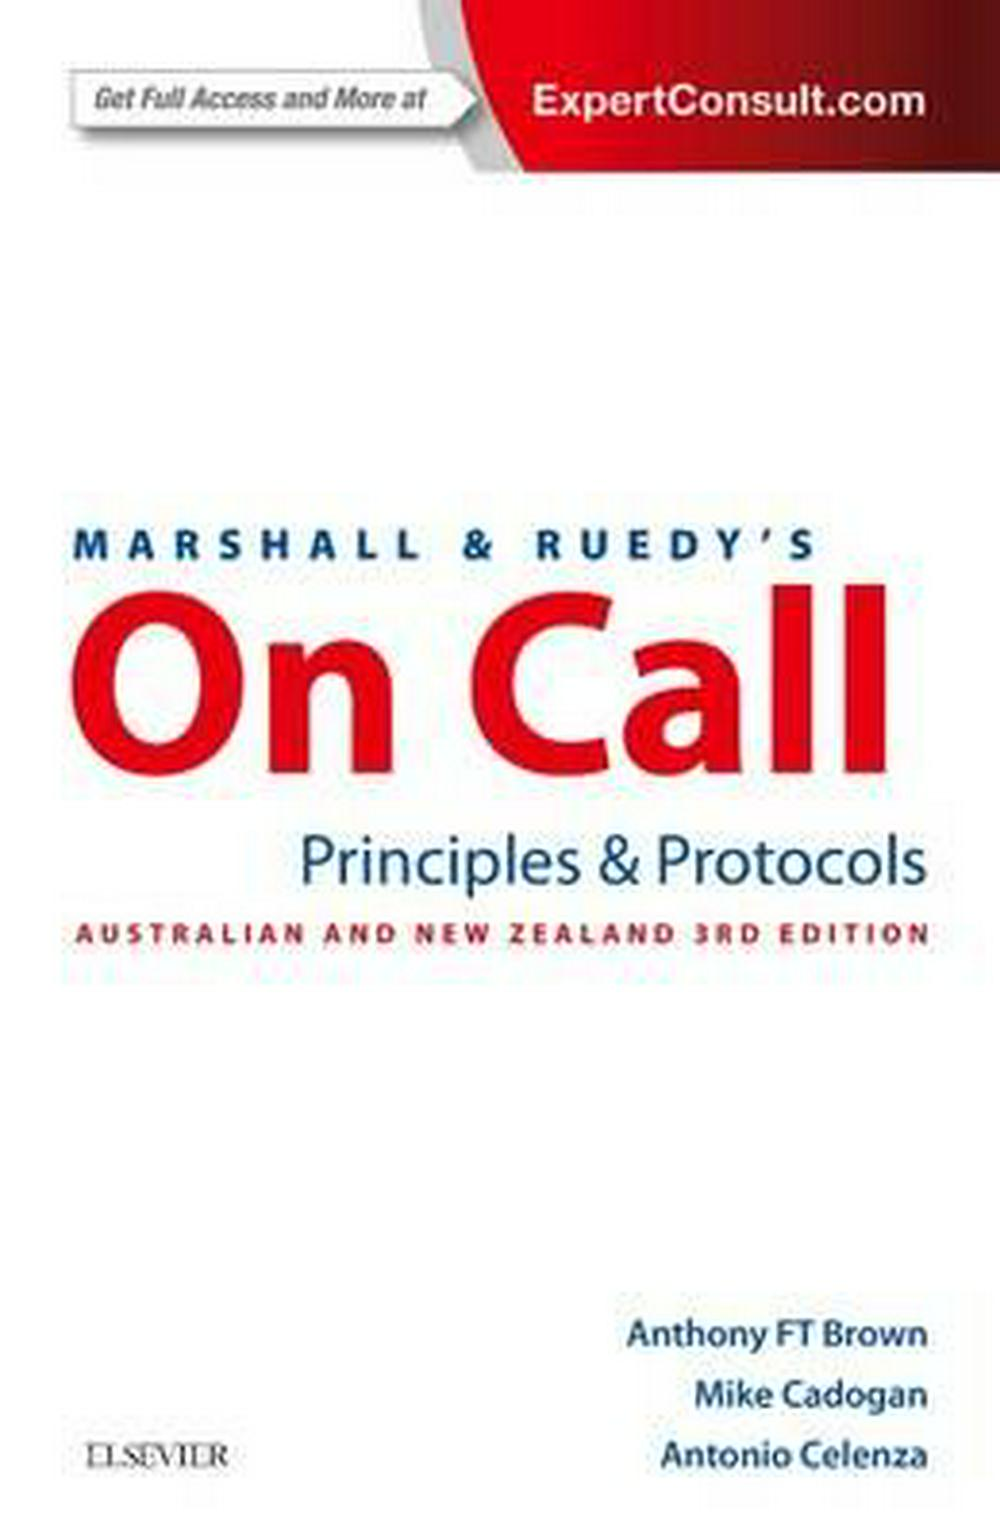 Marshall & Ruedy's On Call3rd Edition by BROWN,CADOGAN,CELENZA, ISBN: 9780729542623